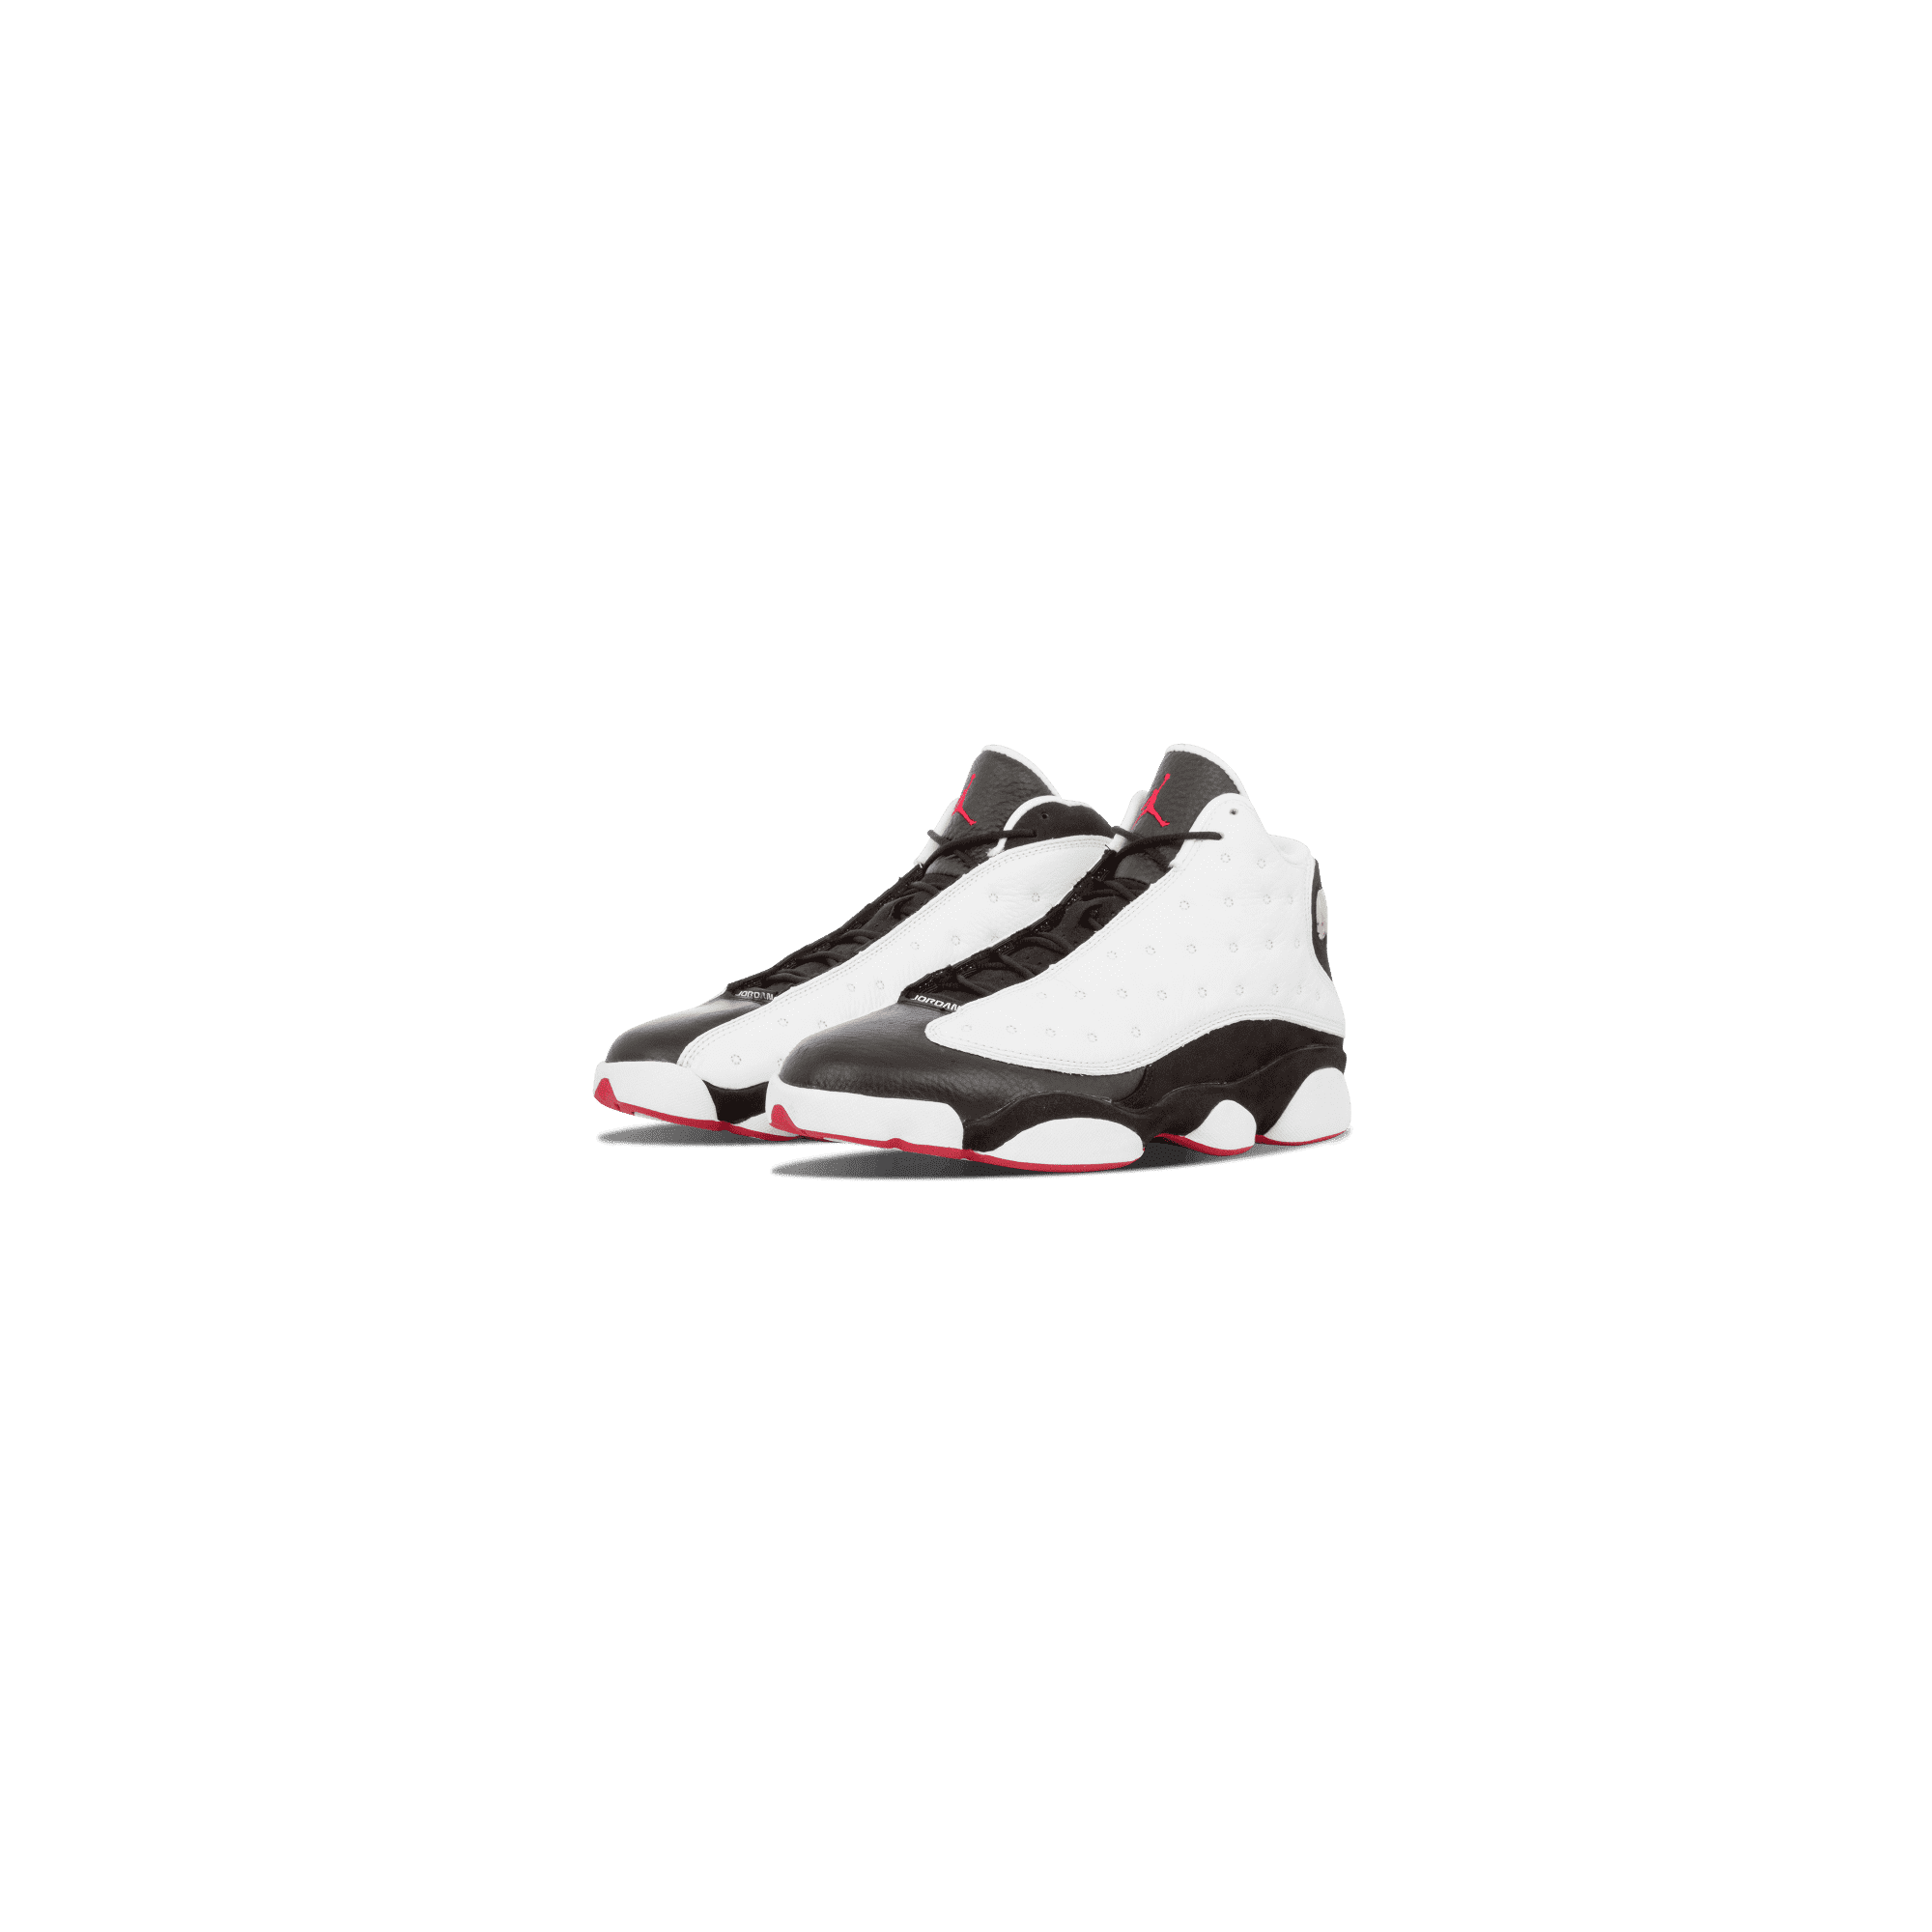 sports shoes acaef 5b4e8 Air Jordan - Men - Air Jordan Retro 13 'He Got Game' - 309259-104 - Size  11.5 - Size 11.5